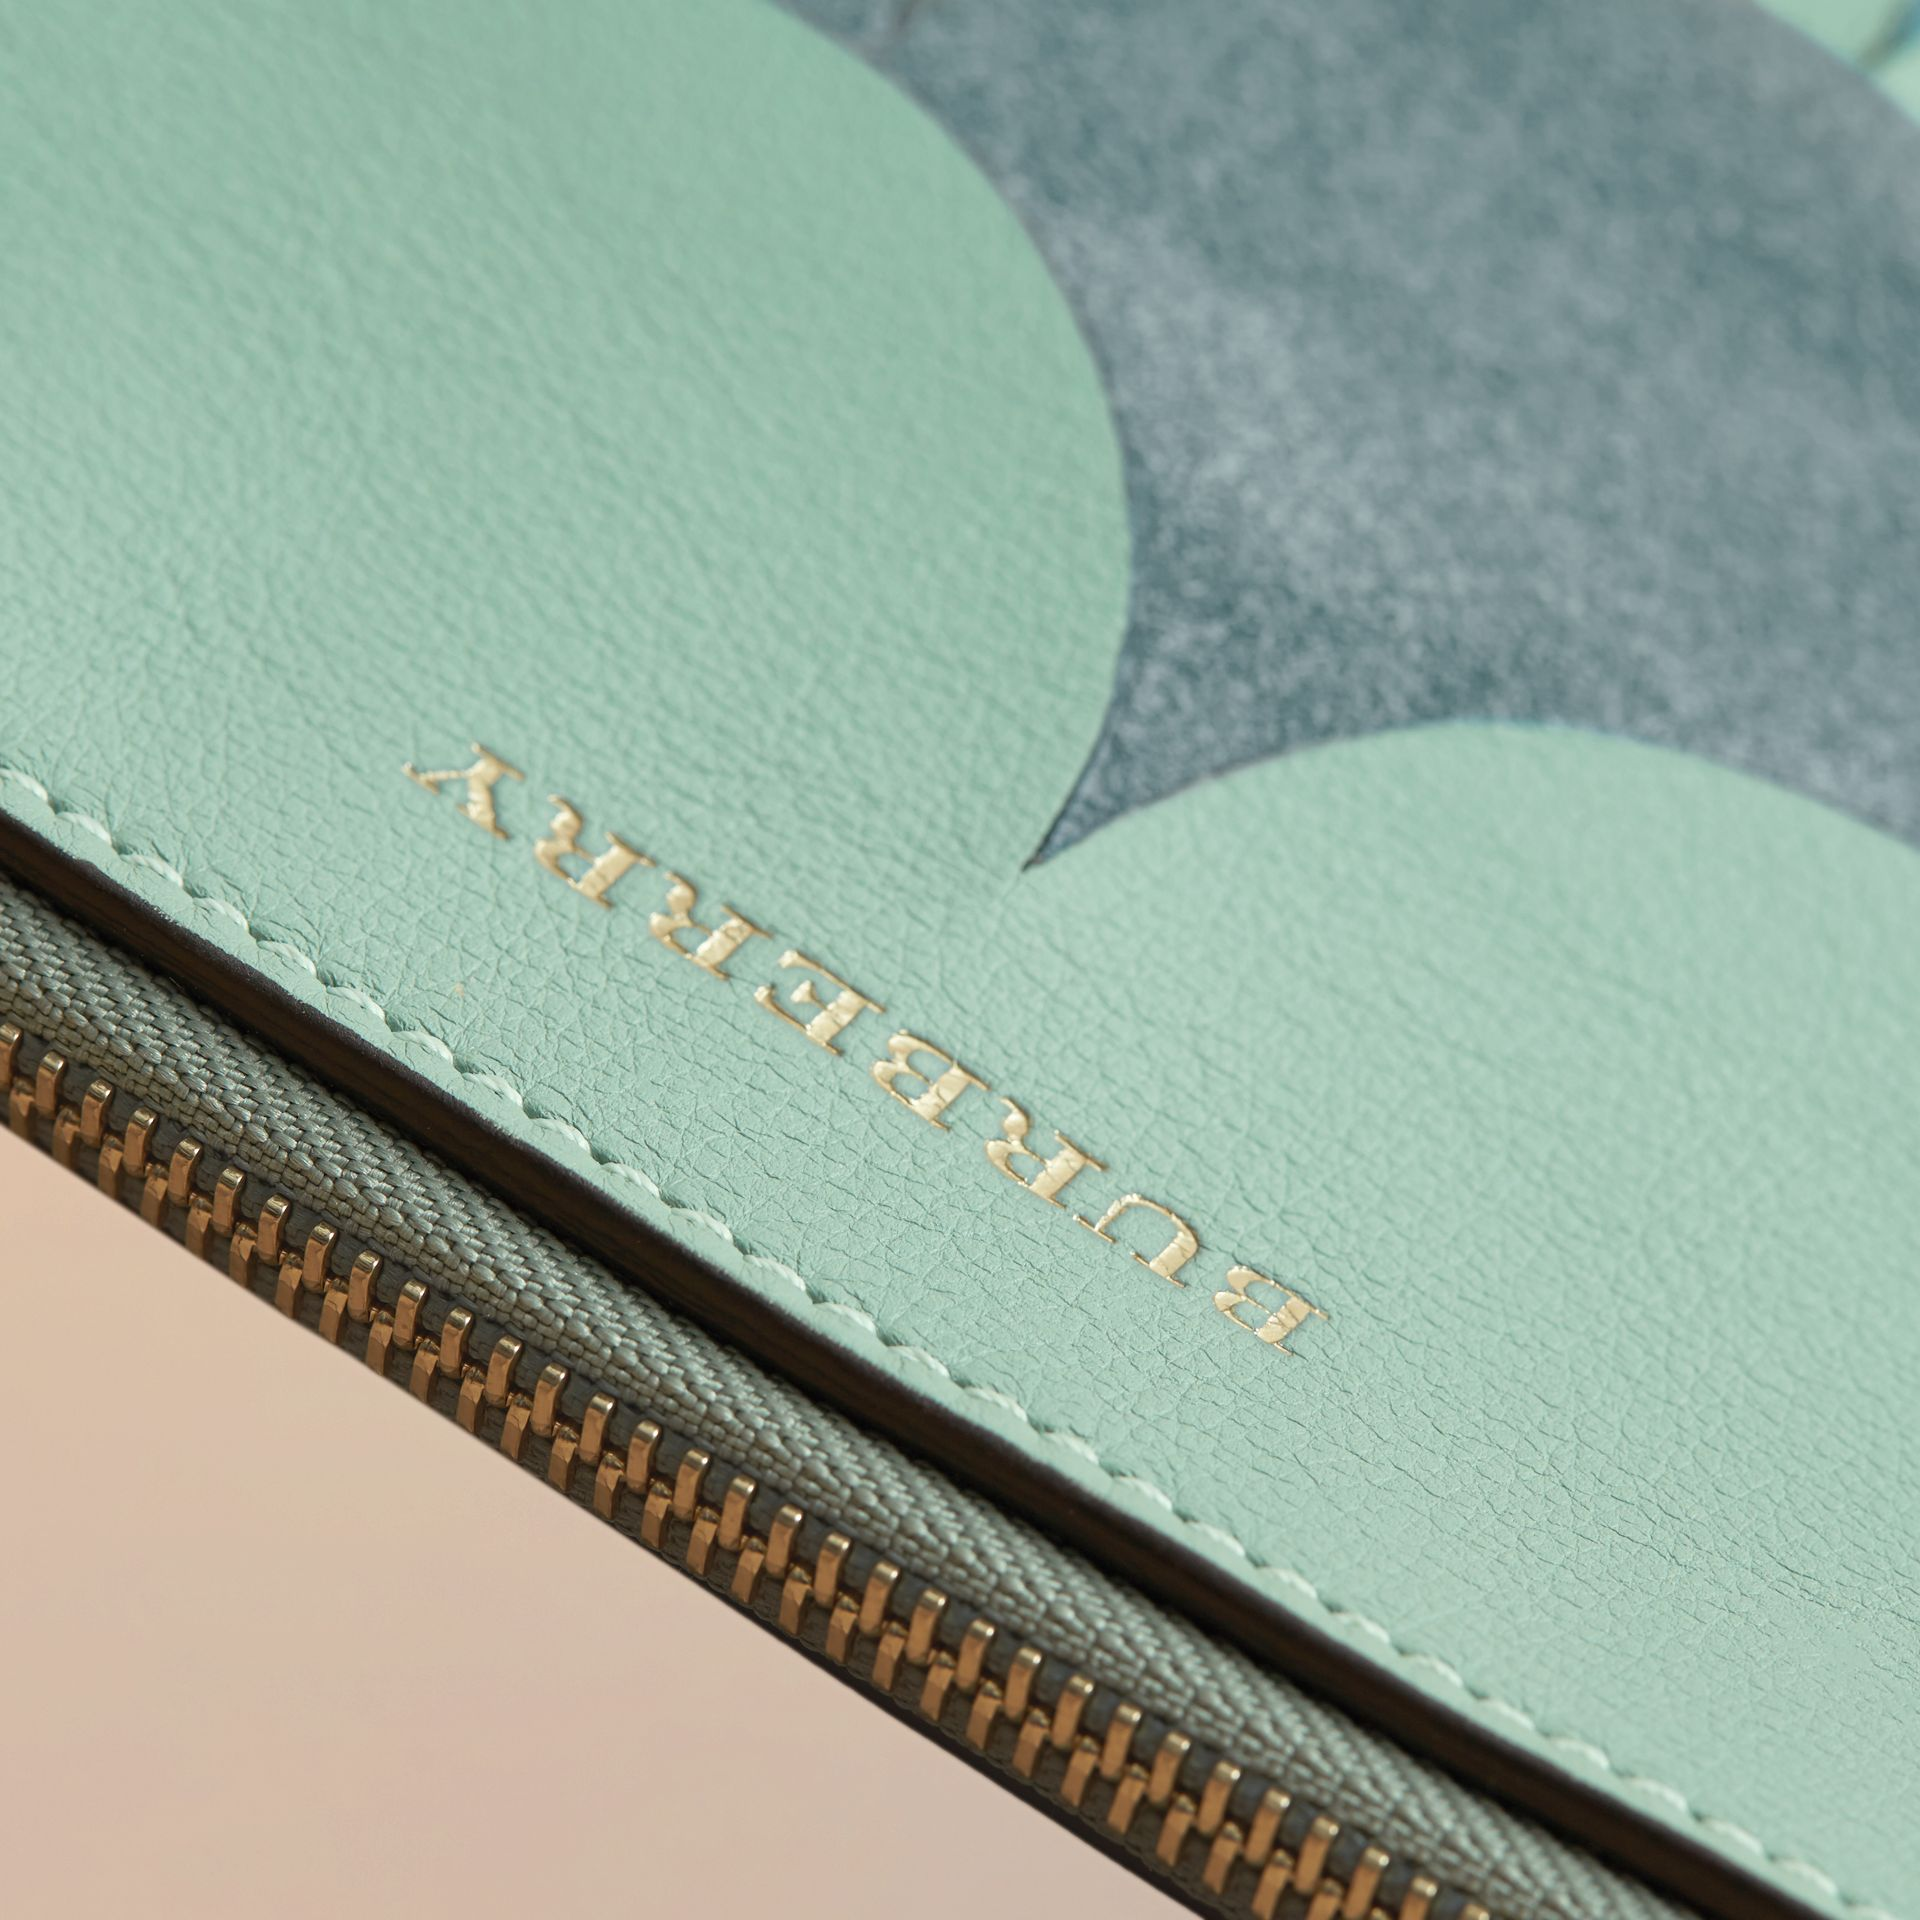 Two-tone Scalloped Leather and Suede Clutch Bag in Celadon Green - Women | Burberry - gallery image 7